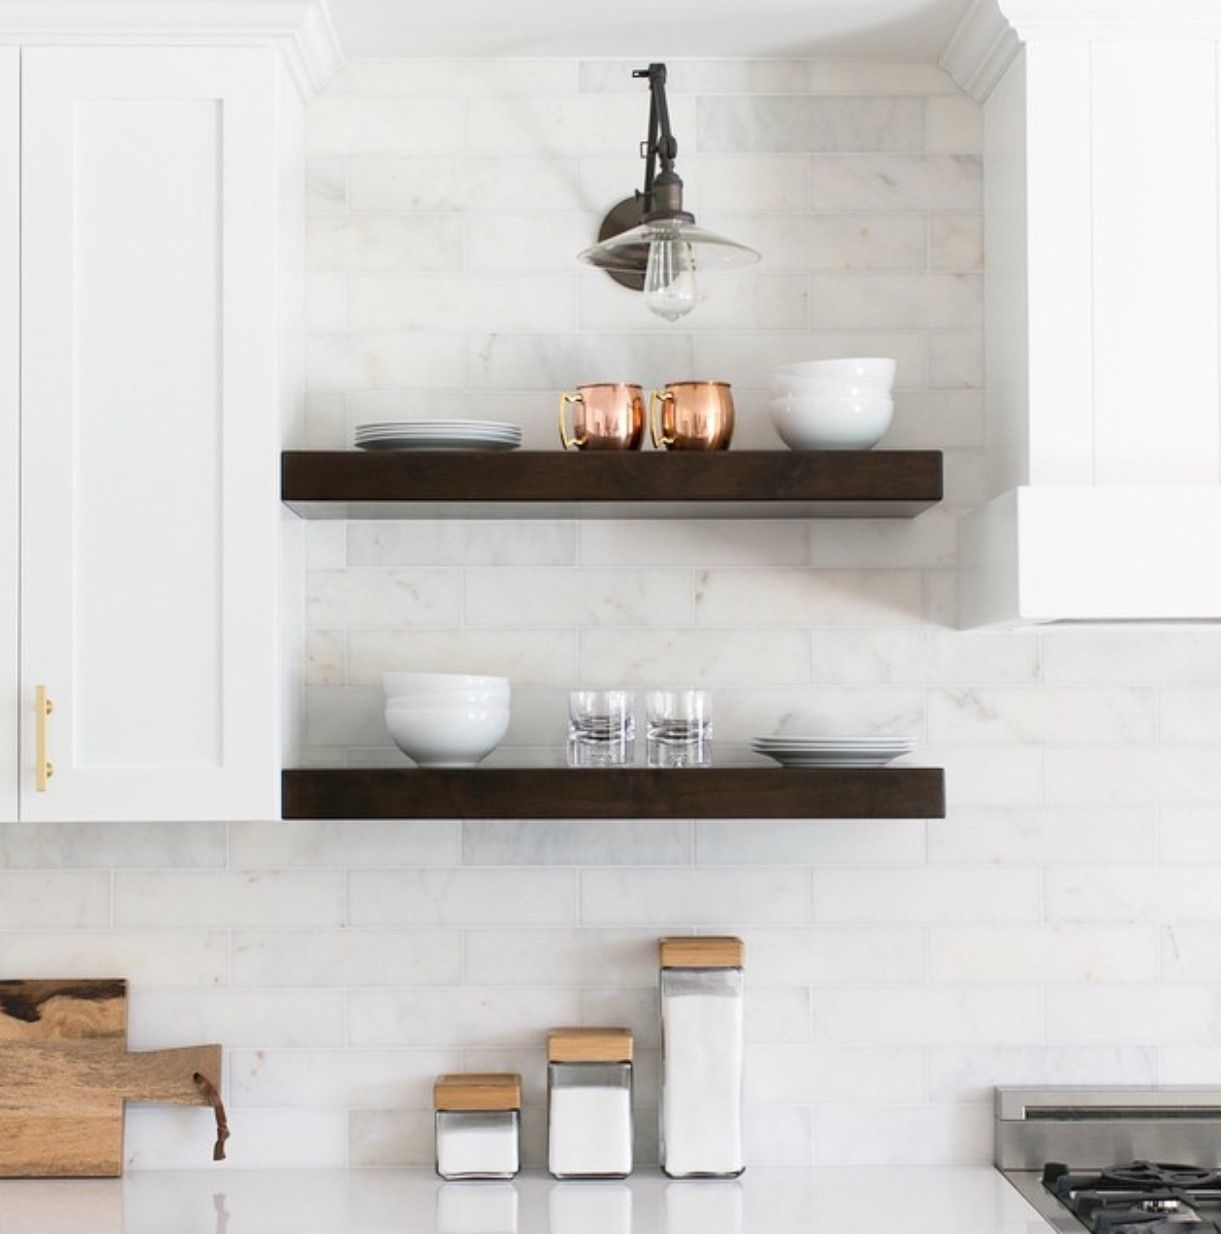 pin by jess jones design group on shelfie open kitchen shelves floating shelves kitchen on kitchen floating shelves id=47645